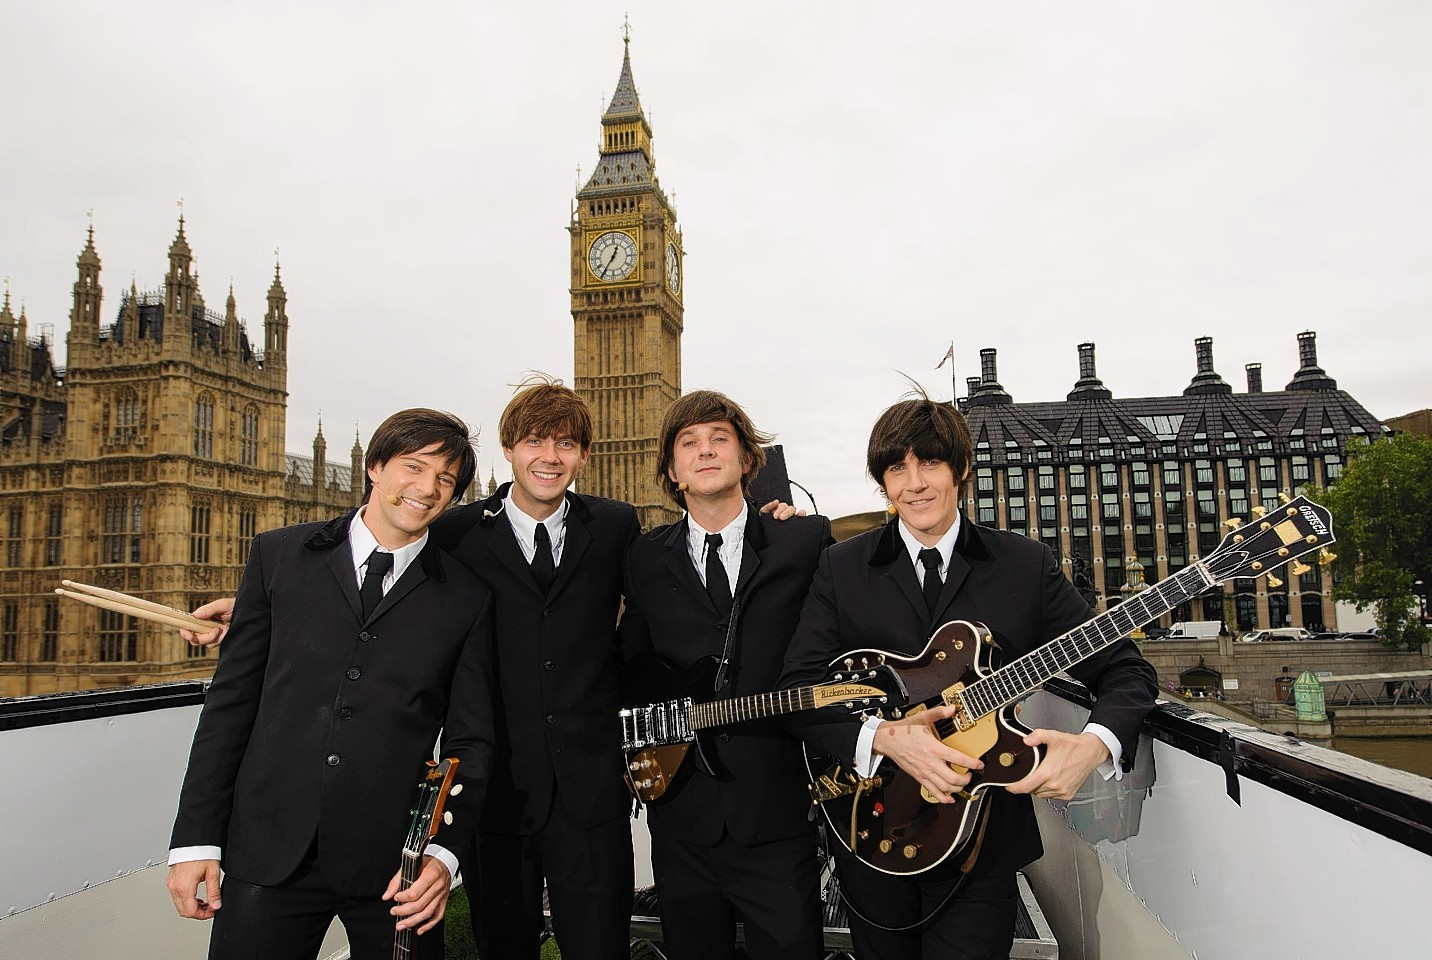 The cast of Beatles musical Let it Be perform in iconic locations to mark the show's return to Garrick Theatre.